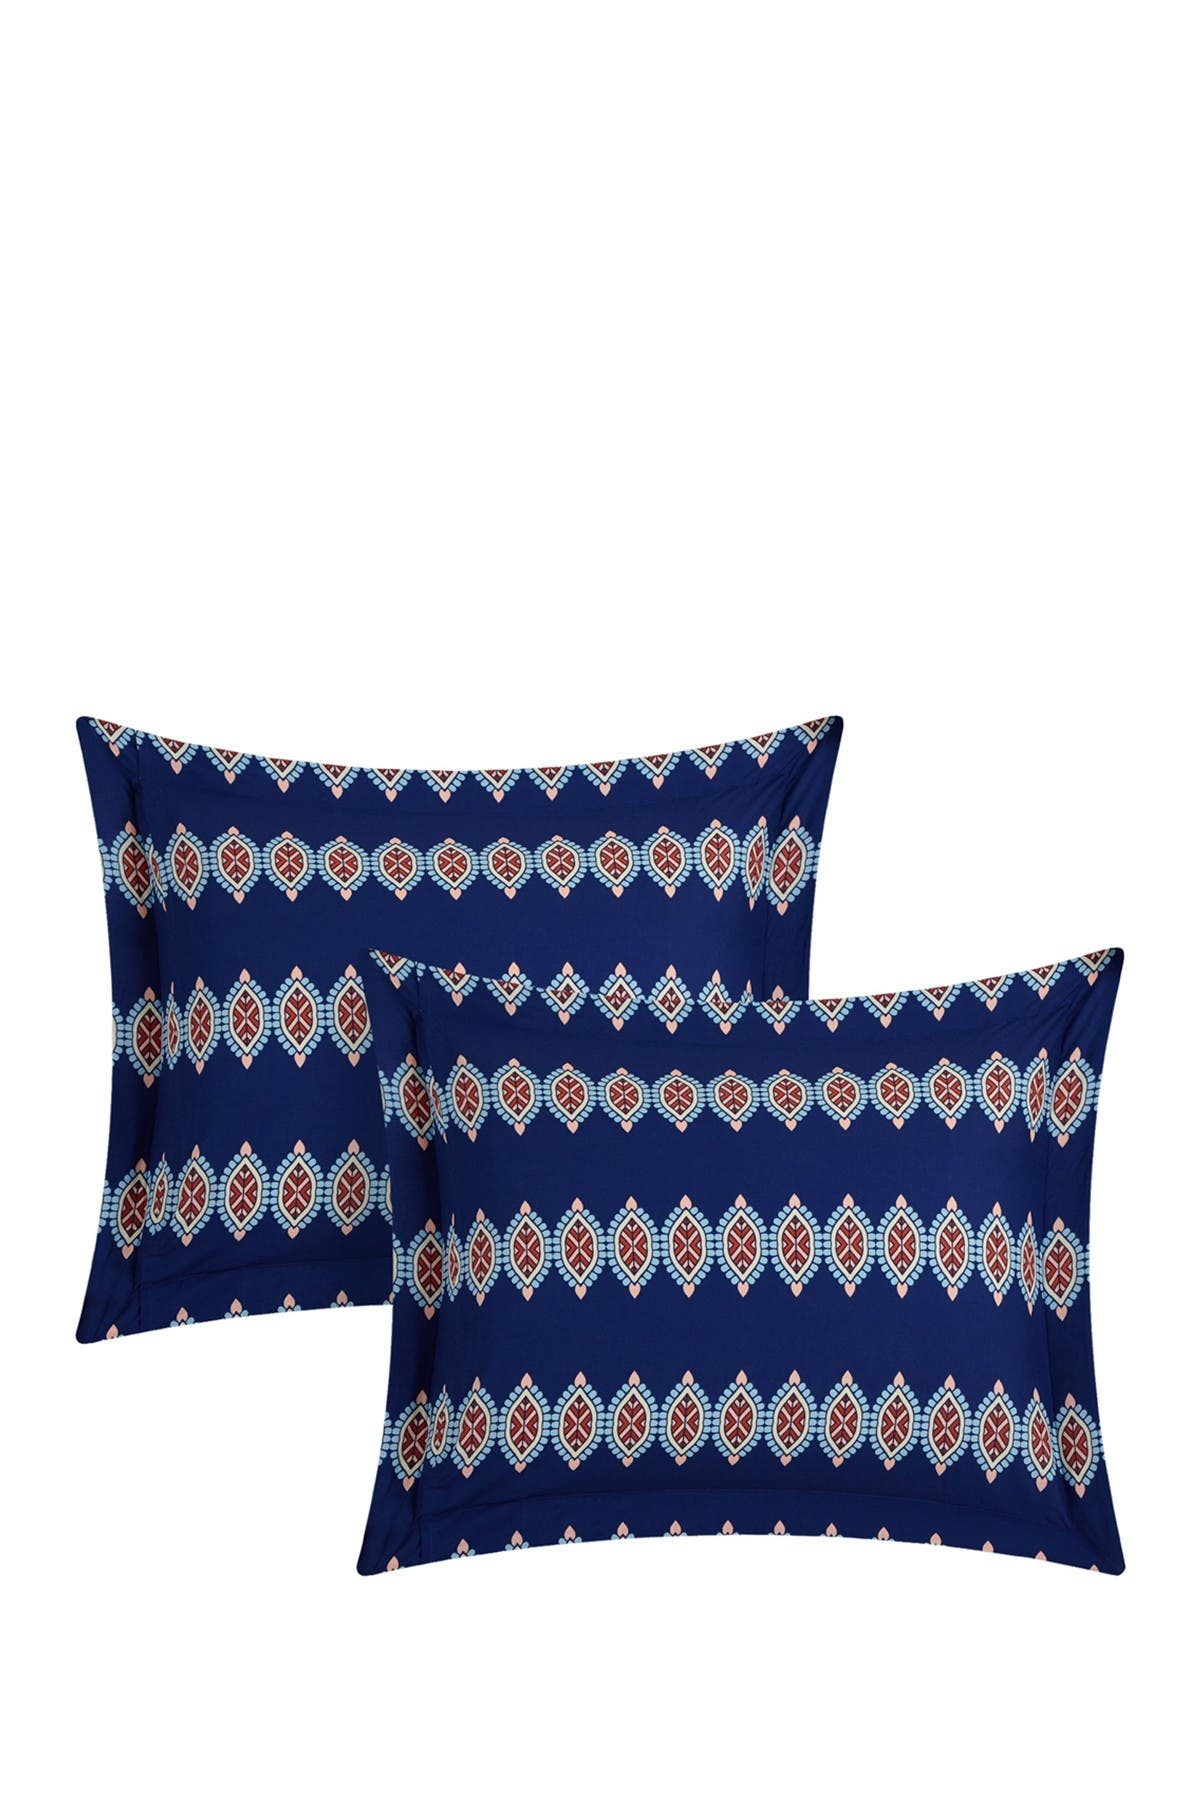 Image of Chic Home Bedding Queen Yucca Boho Printed Reversible Quilt Set - Blue